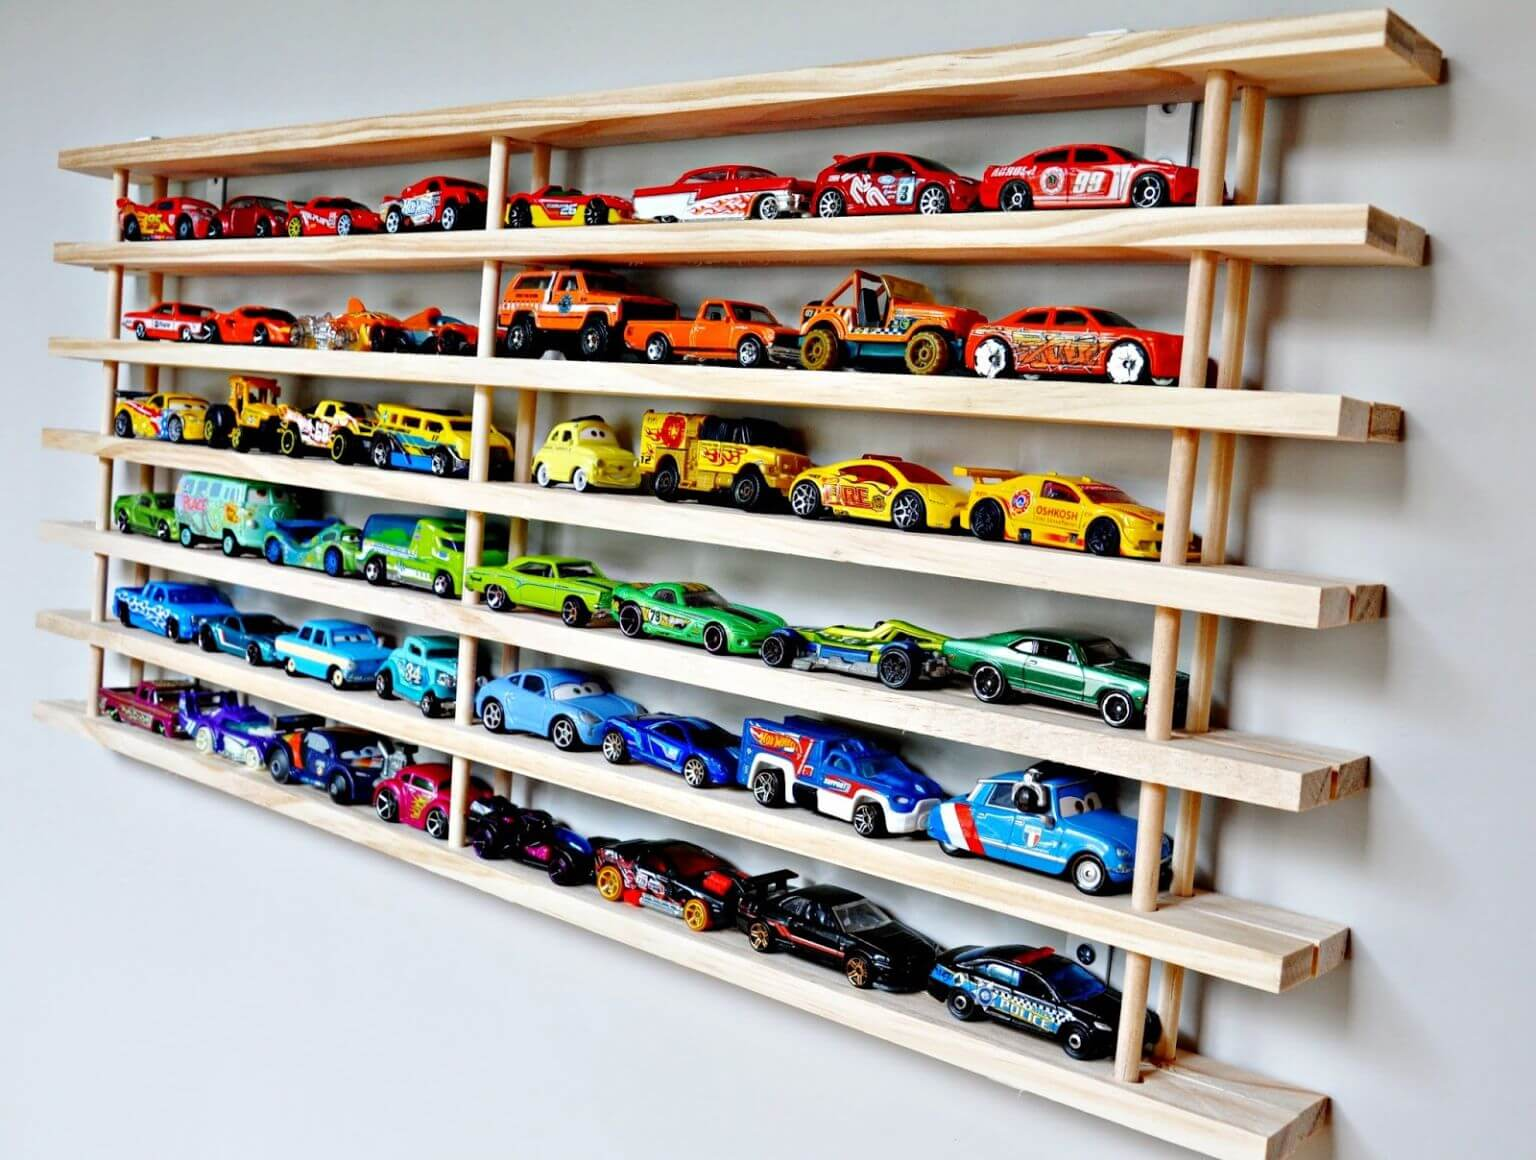 16 Kids Toy Storage And Organization Ideas - storage ideas, kids storage ideas, kids room storage ideas, room decor, diy decor, diy room decor, diy, decor, crafts, do it yourself